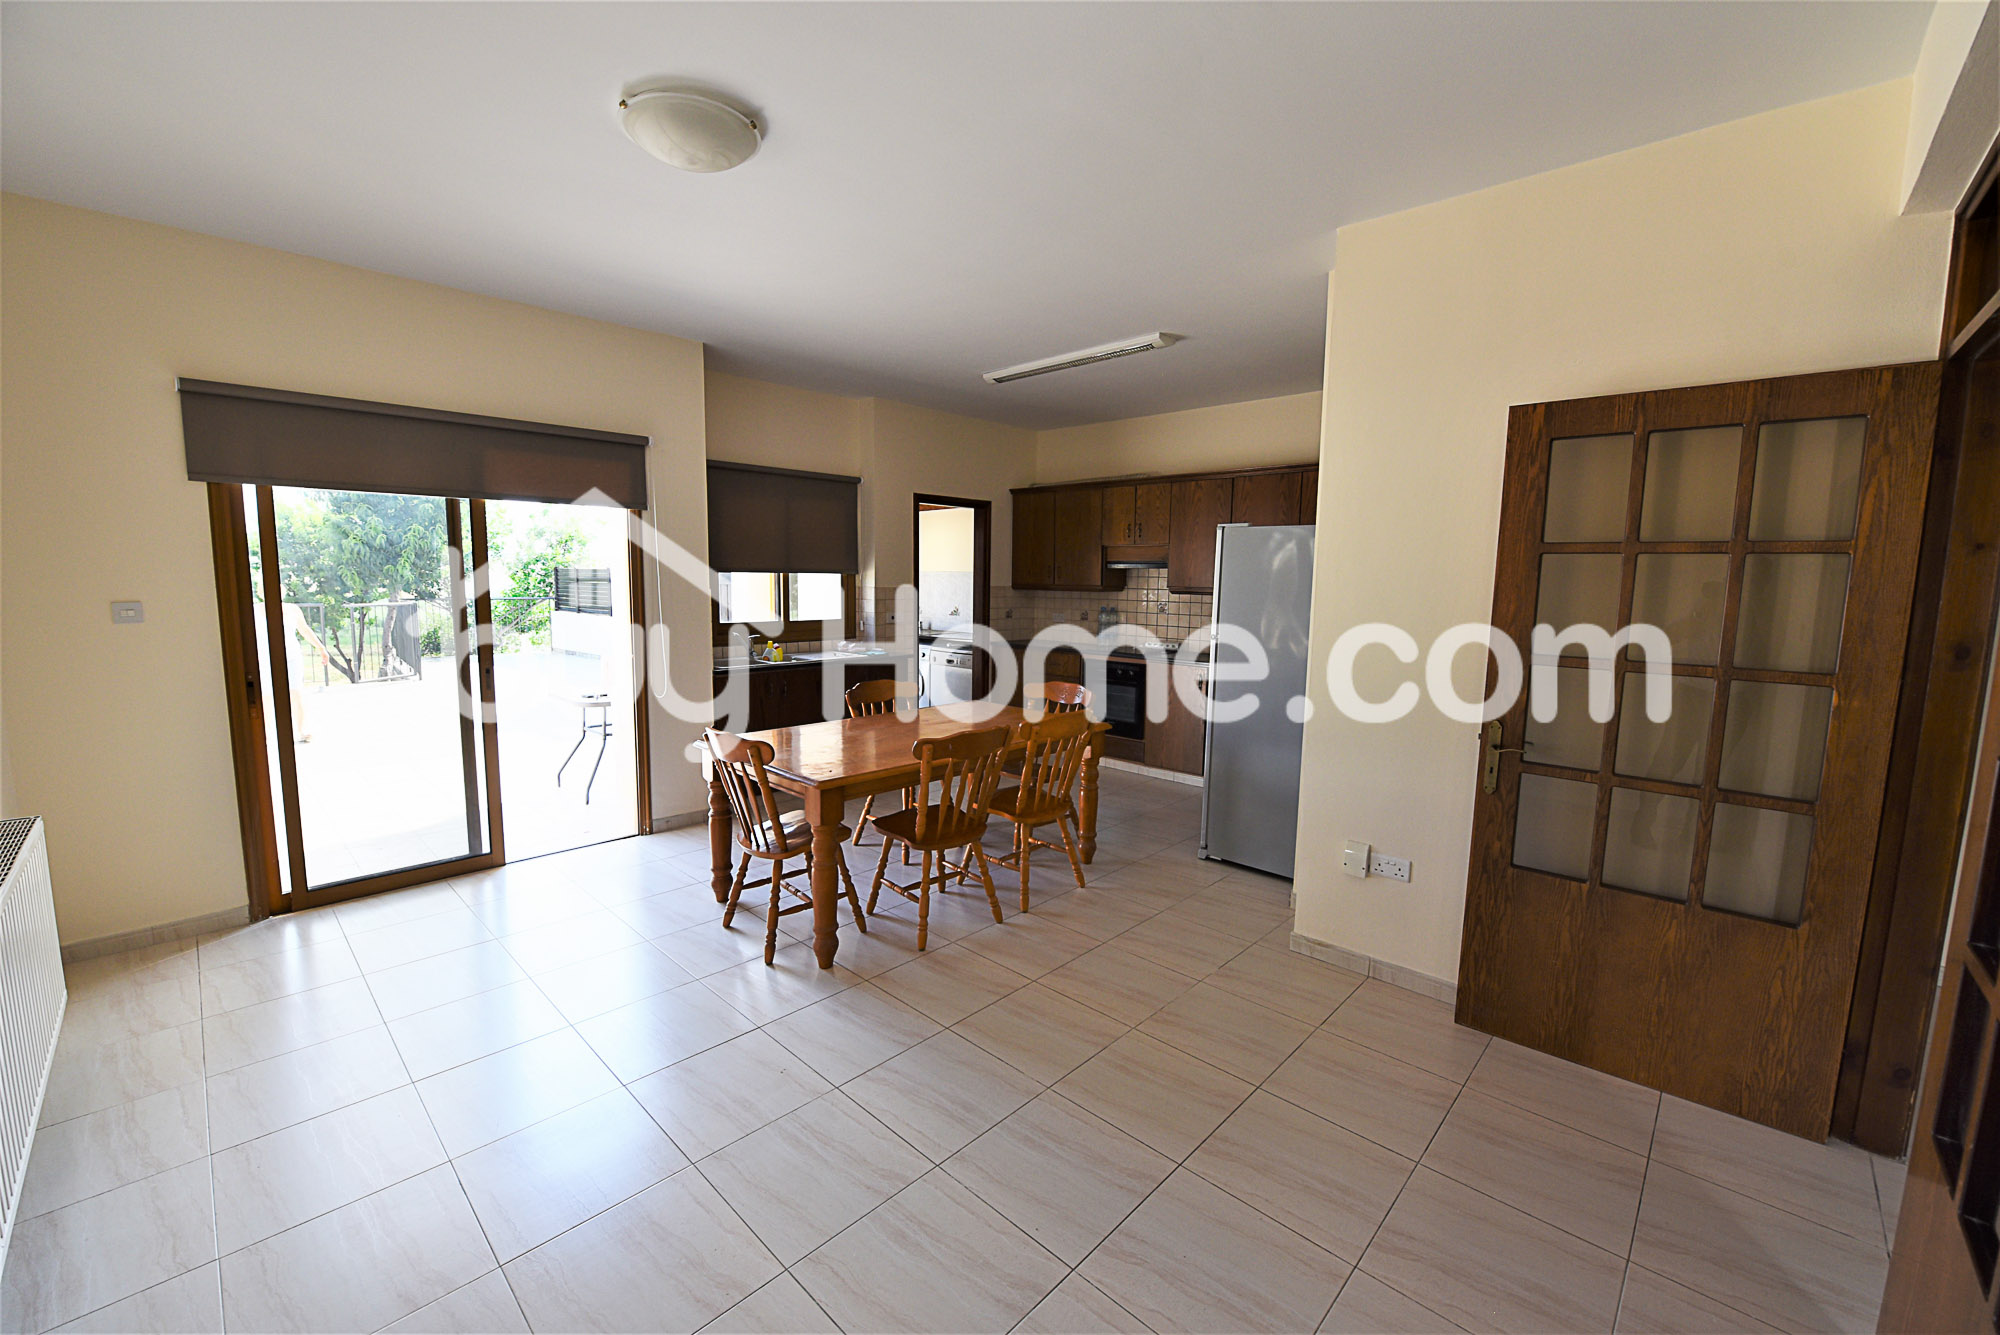 3 Bed -Spacious & Bright Family House | BuyHome